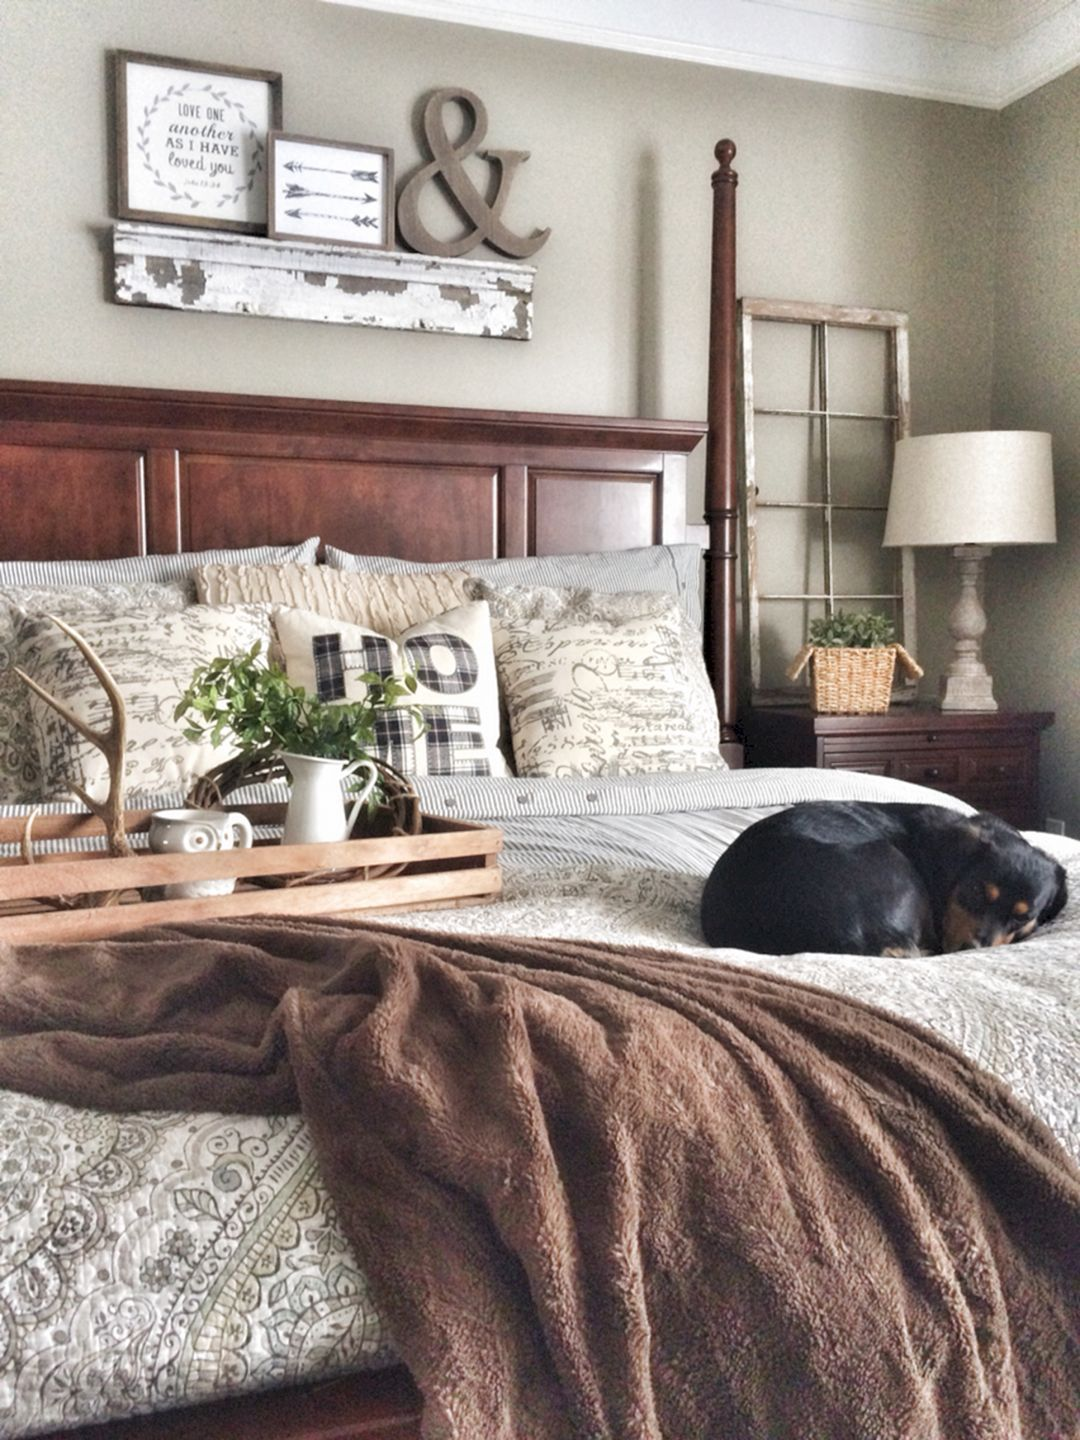 40  Incredible Rustic Farmhouse Style Master Bedroom Ideas   Rustic     40  Incredible Rustic Farmhouse Style Master Bedroom Ideas